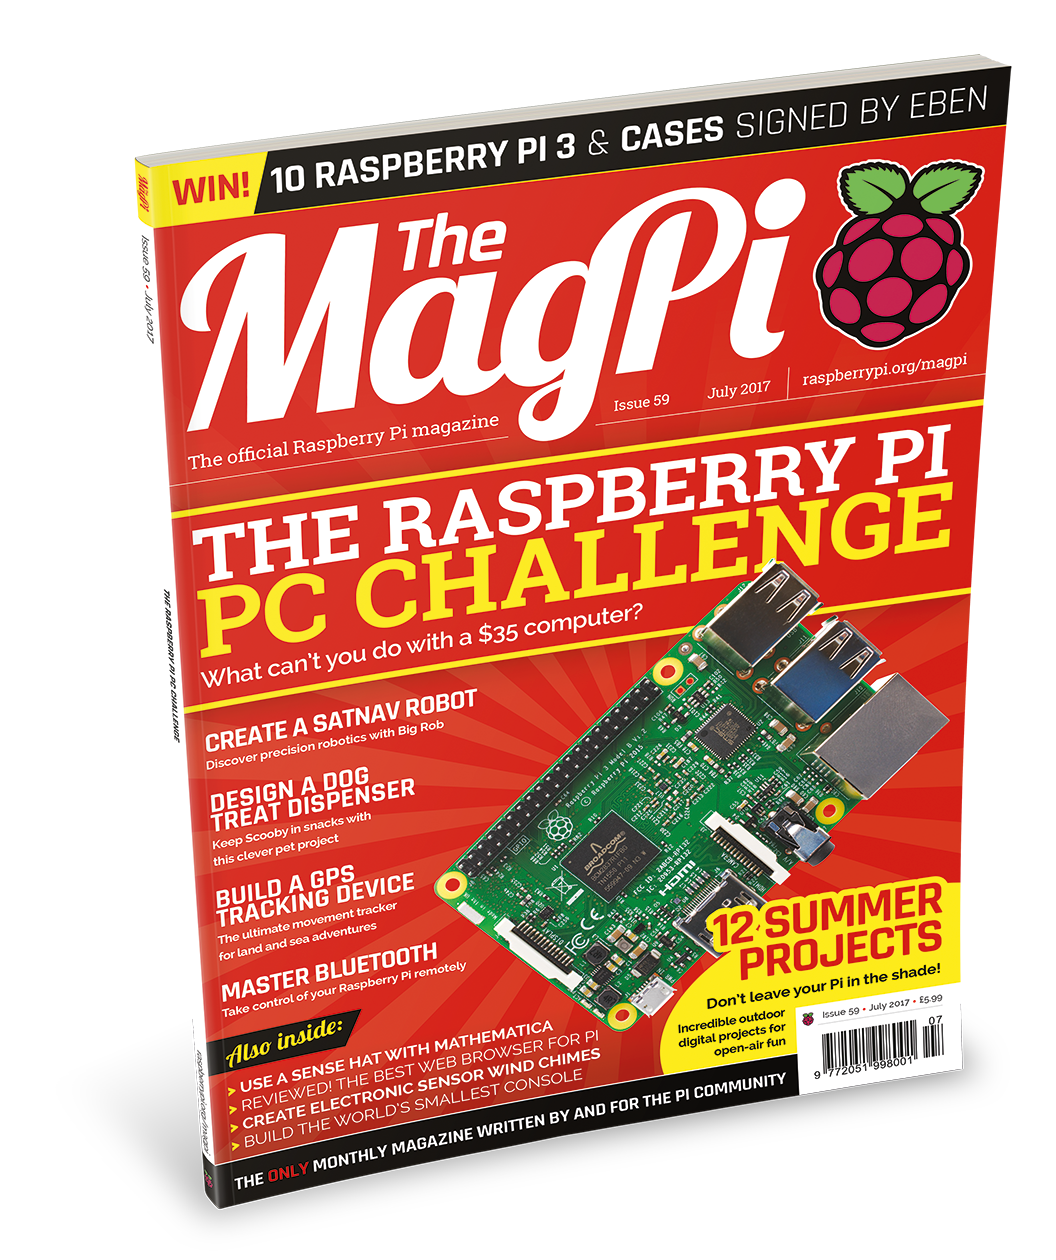 The Raspberry Pi PC Challenge in The MagPi 59